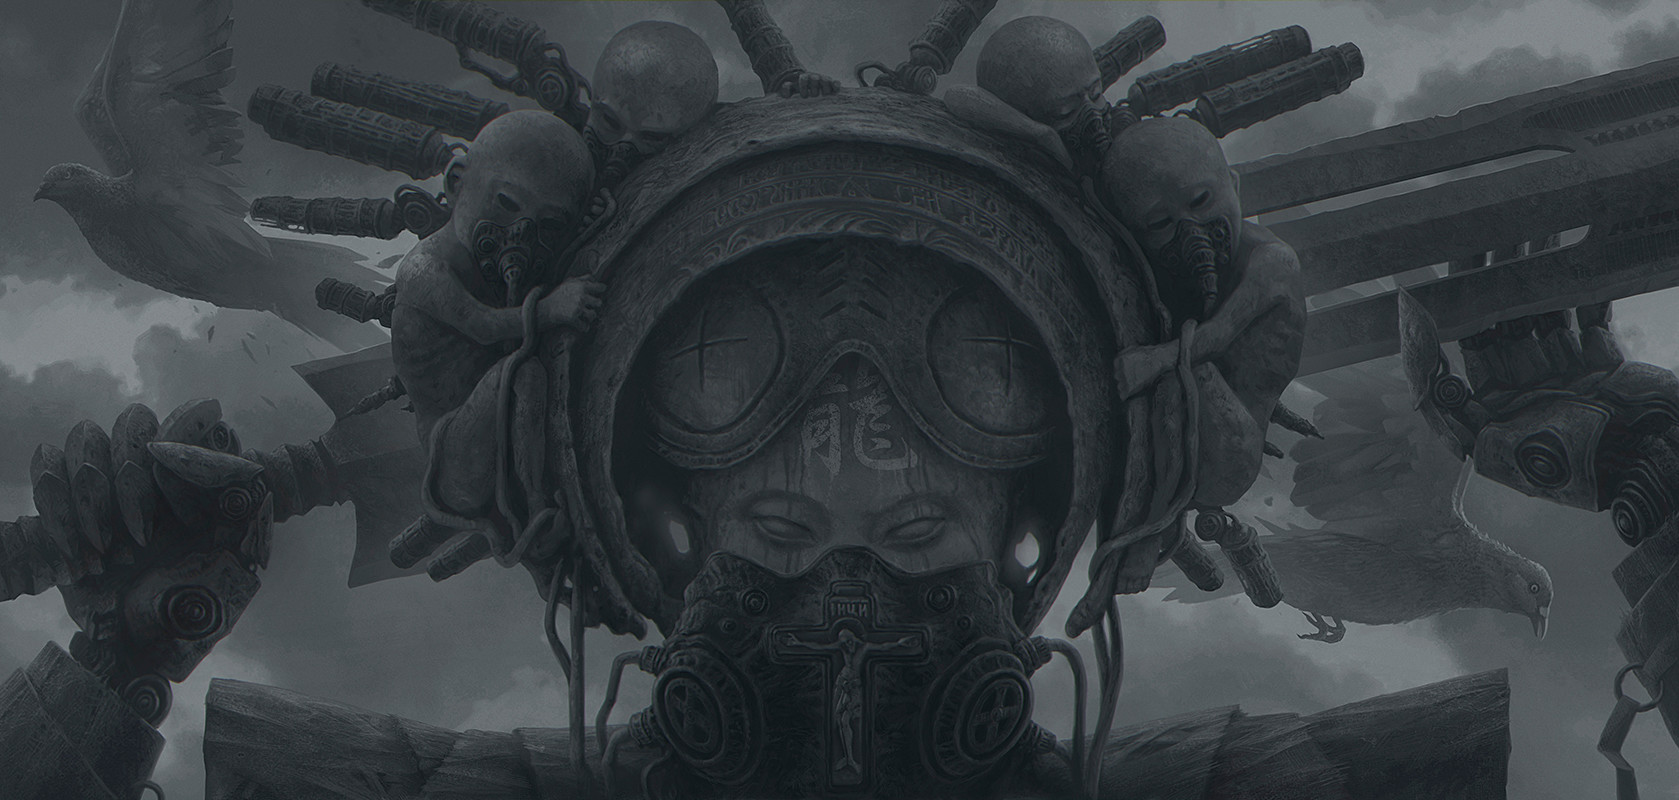 The Sci-Fi & Fantasy Art of Alexey Egorov